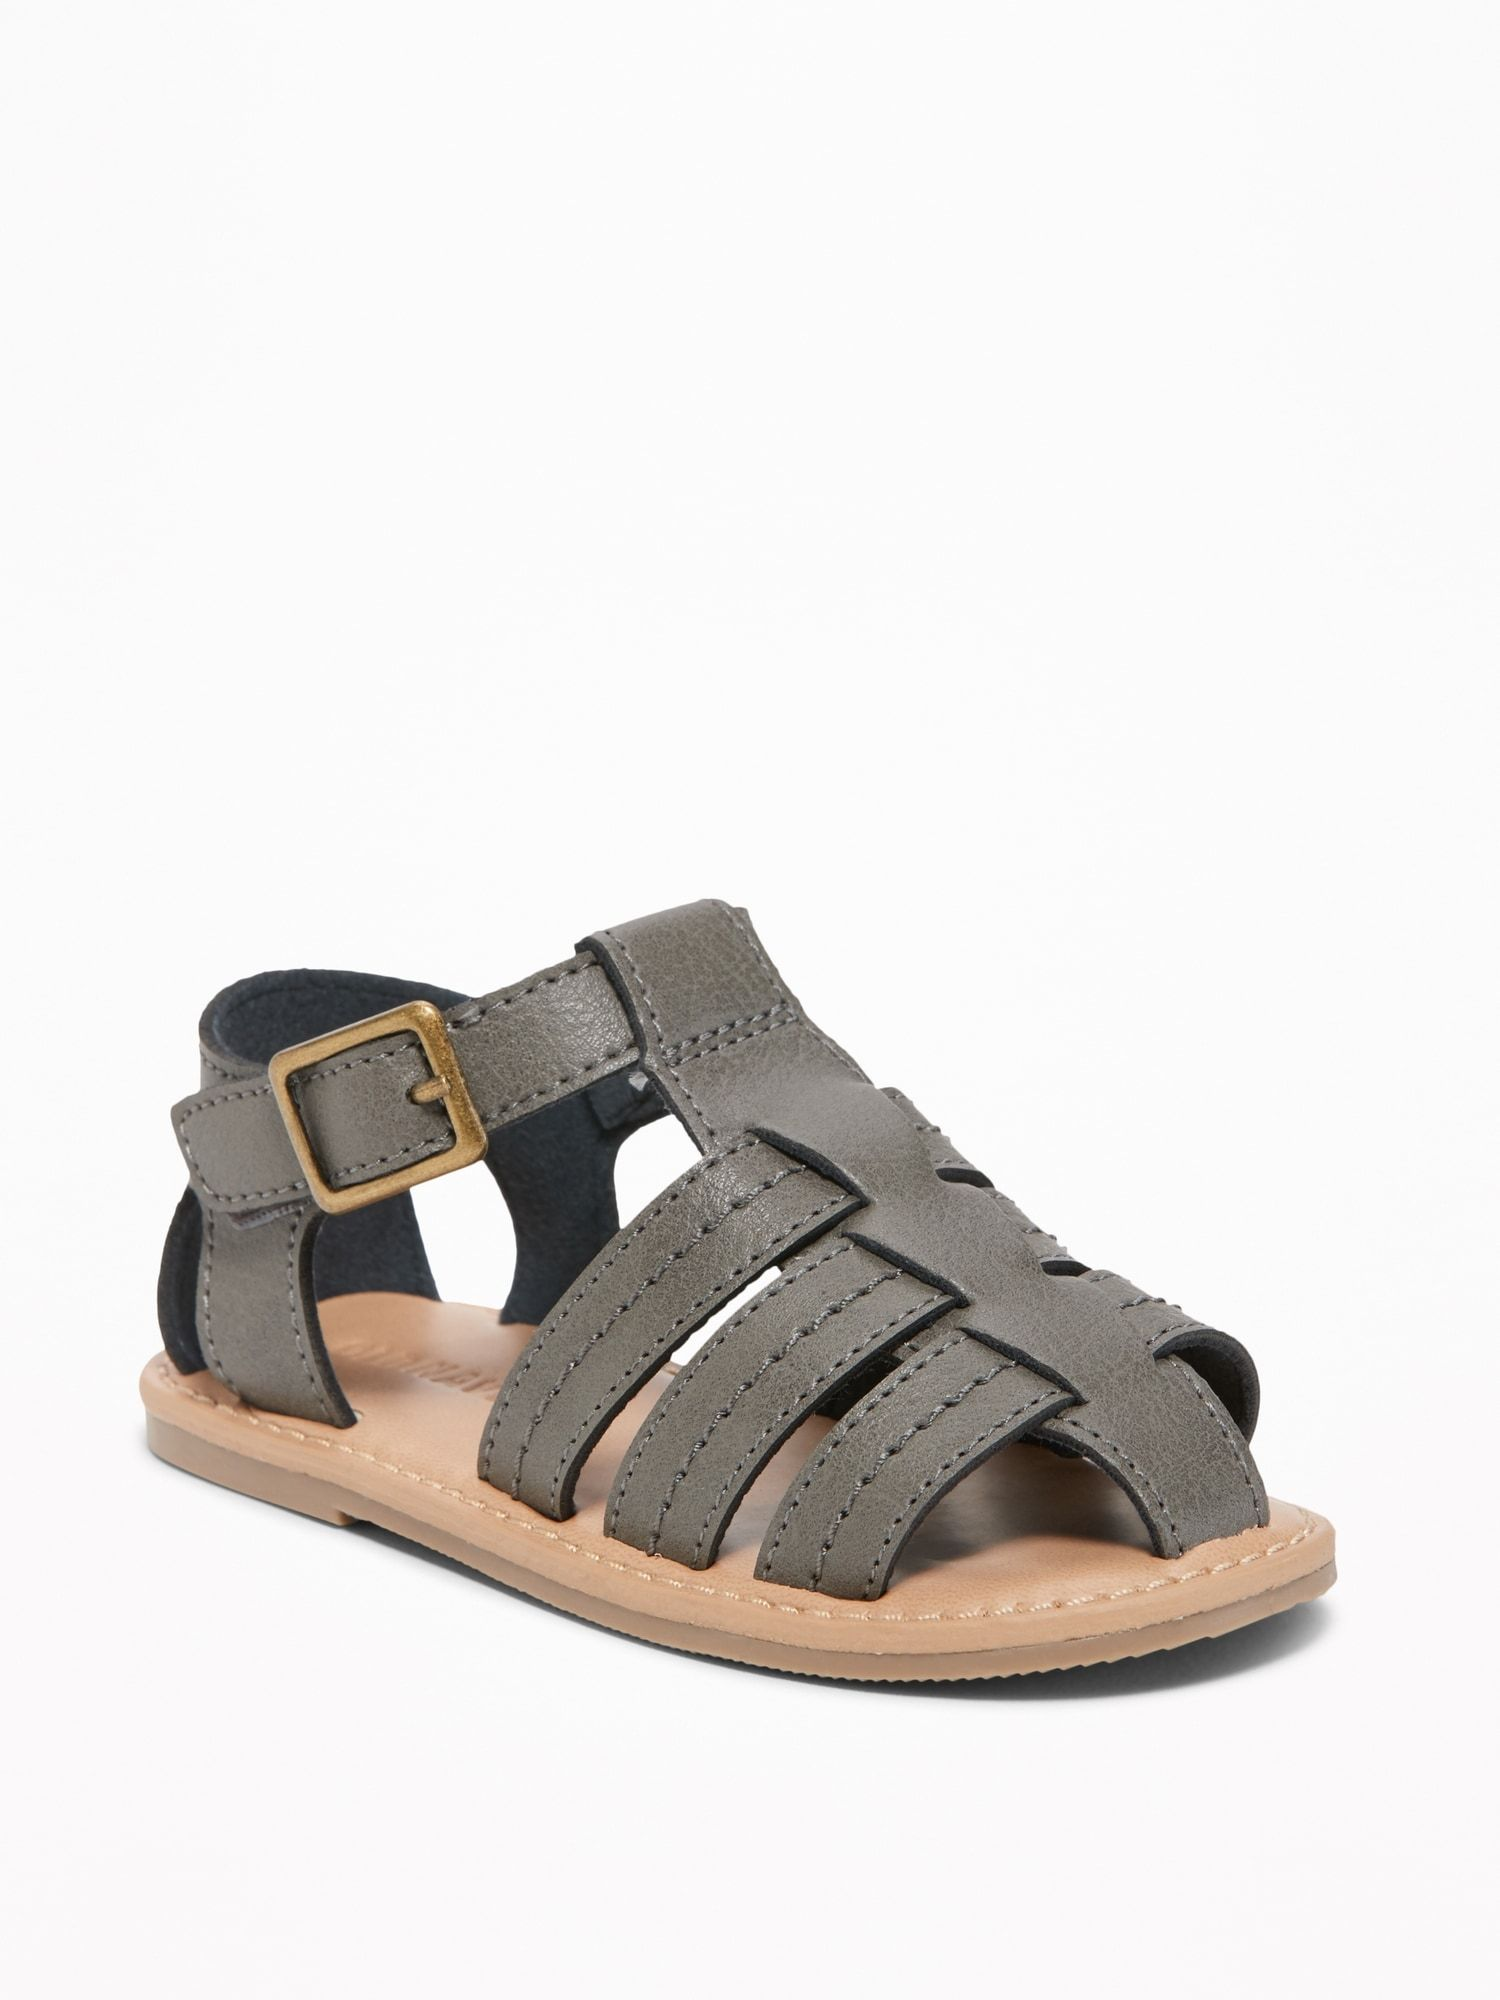 Faux Leather Fisherman Sandals For Toddler Boys Old Navy Fisherman Sandals Rubber Heels Fisherman Sandal